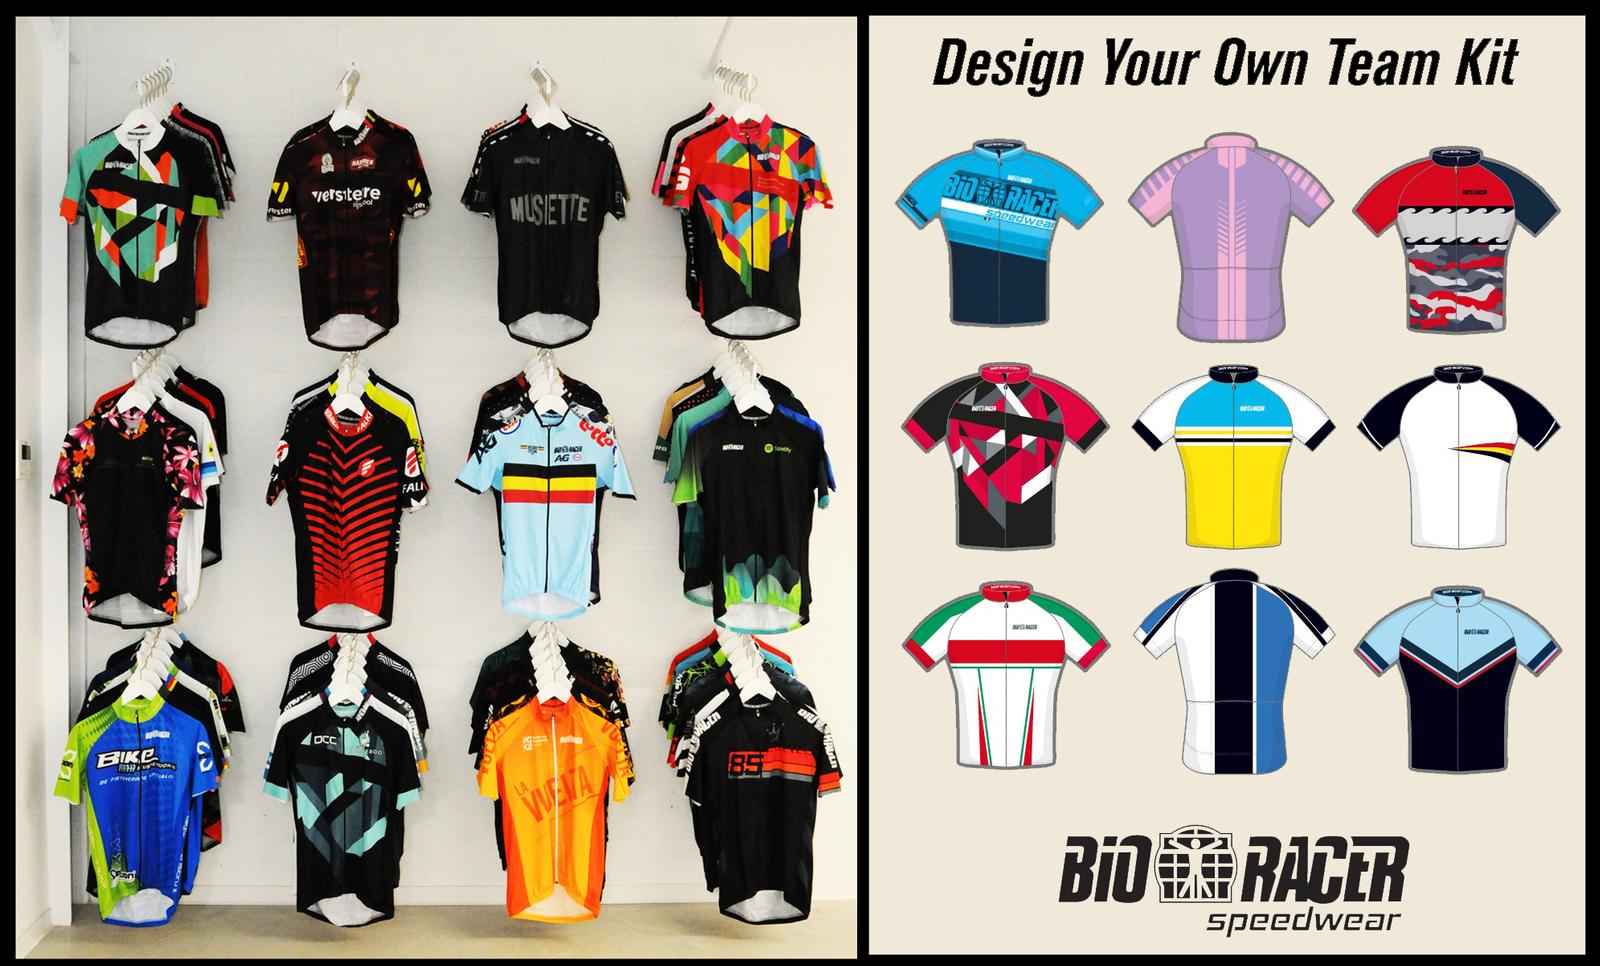 Cycling shirt design your own - Interested In Developing Your Own Teamwear Contact Us For A Quote And Or A Custom Design For Your Cycling Team